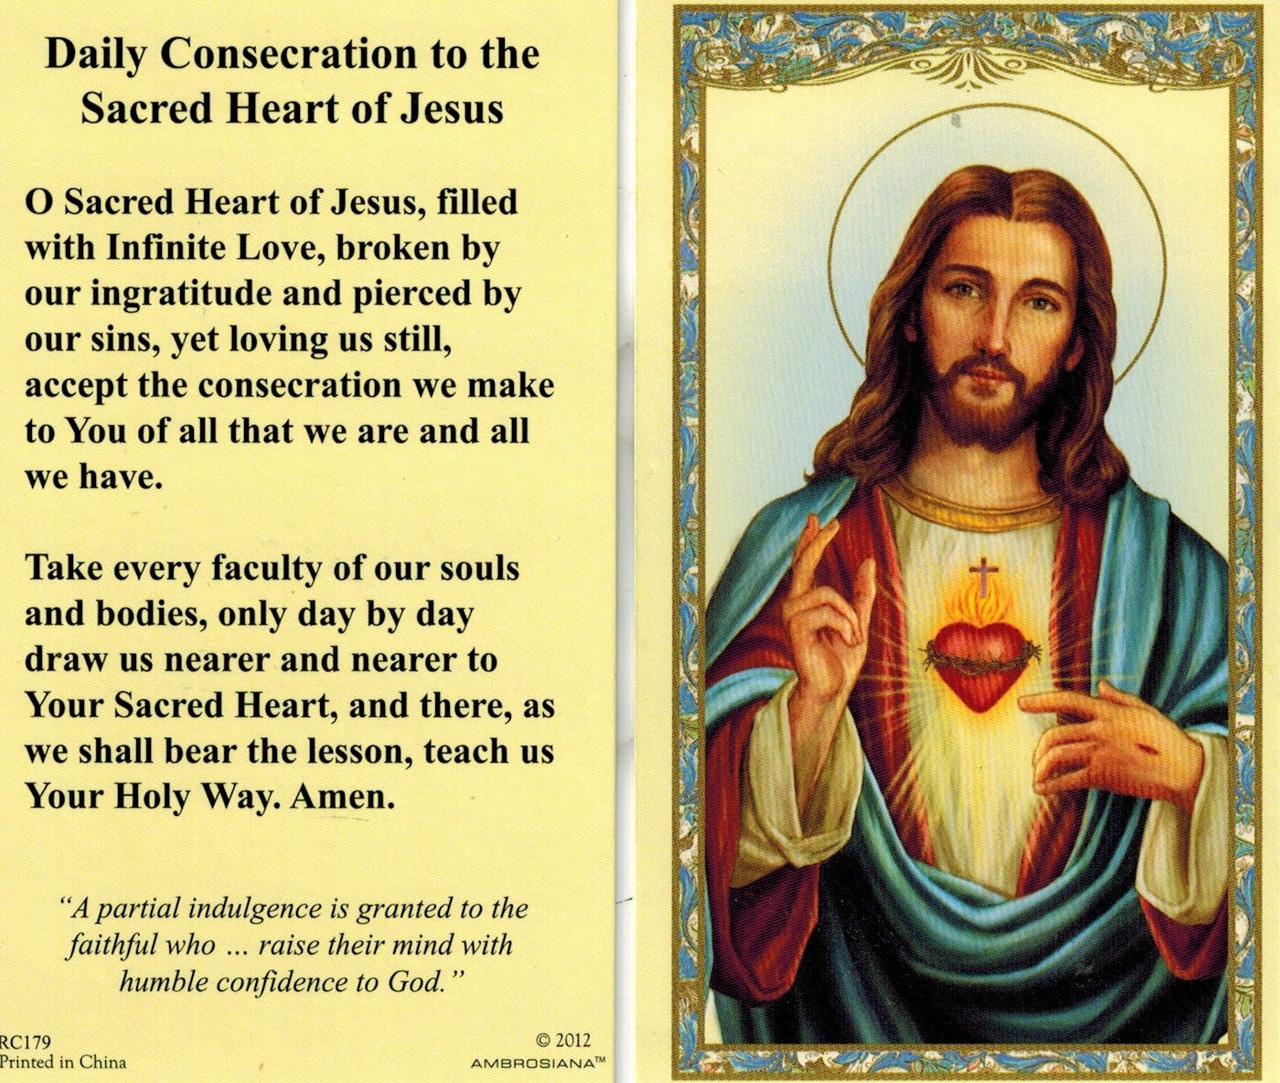 Daily Consecration to the Sacred Heart of Jesus Prayer Card